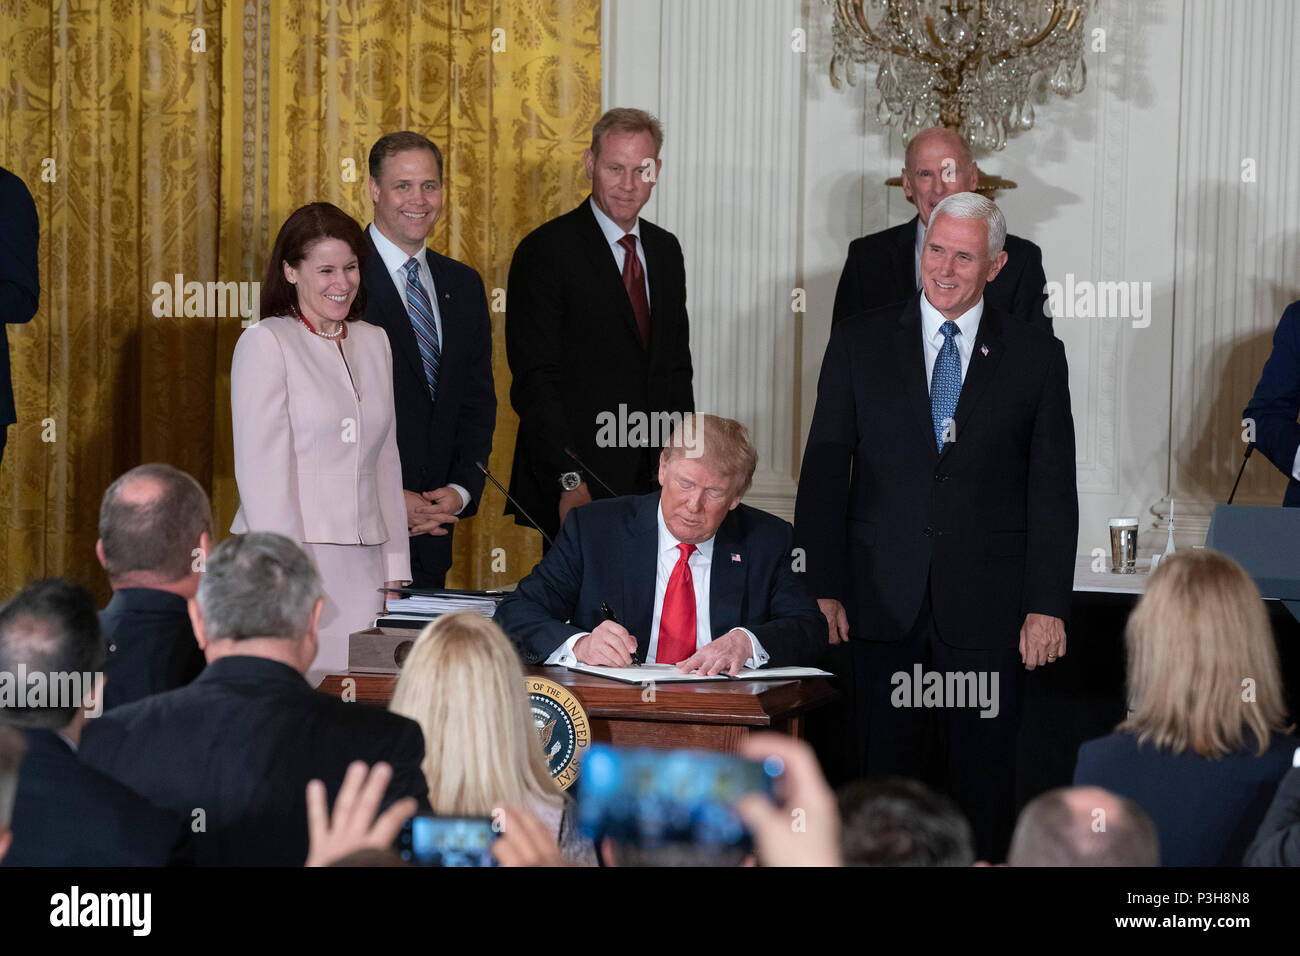 United States President Donald J. Trump signs Space Policy Directive 3 during a meeting of the National Space Council at The White House in Washington, DC, June 18, 2018. The directive addresses issues including monitoring of objects in orbit, providing that information to spacecraft operators to avoid collisions, and to limit the growth of orbital debris. Chris Kleponis/CNP /MediaPunch - Stock Image